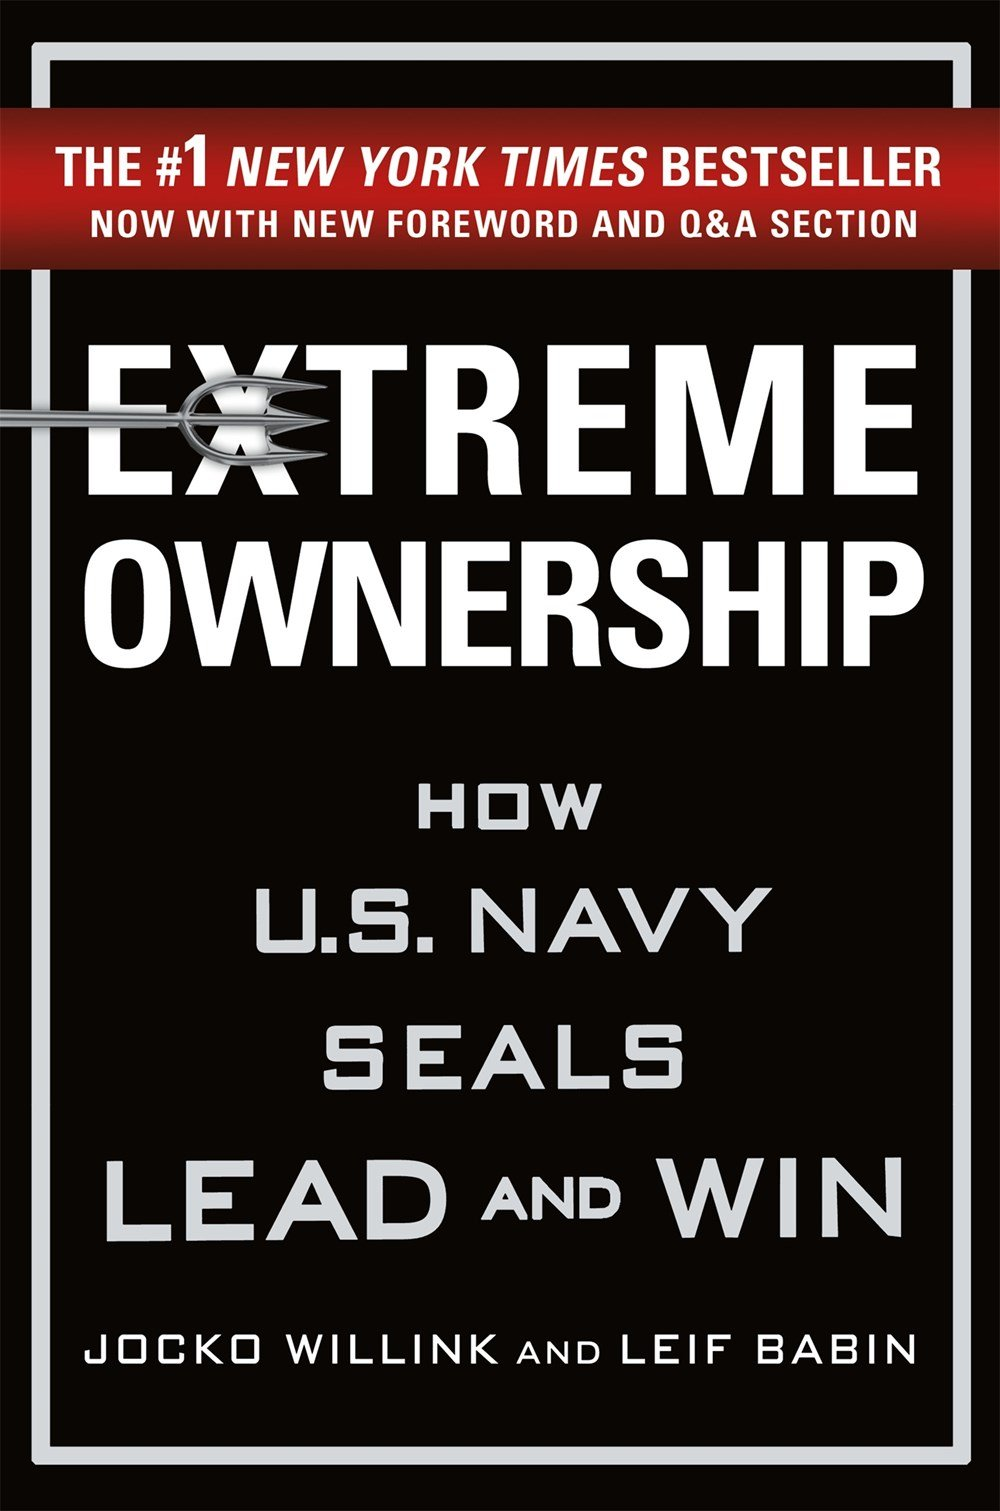 Extreme Ownership: How U.S. Navy SEALs Lead and Win insurgent